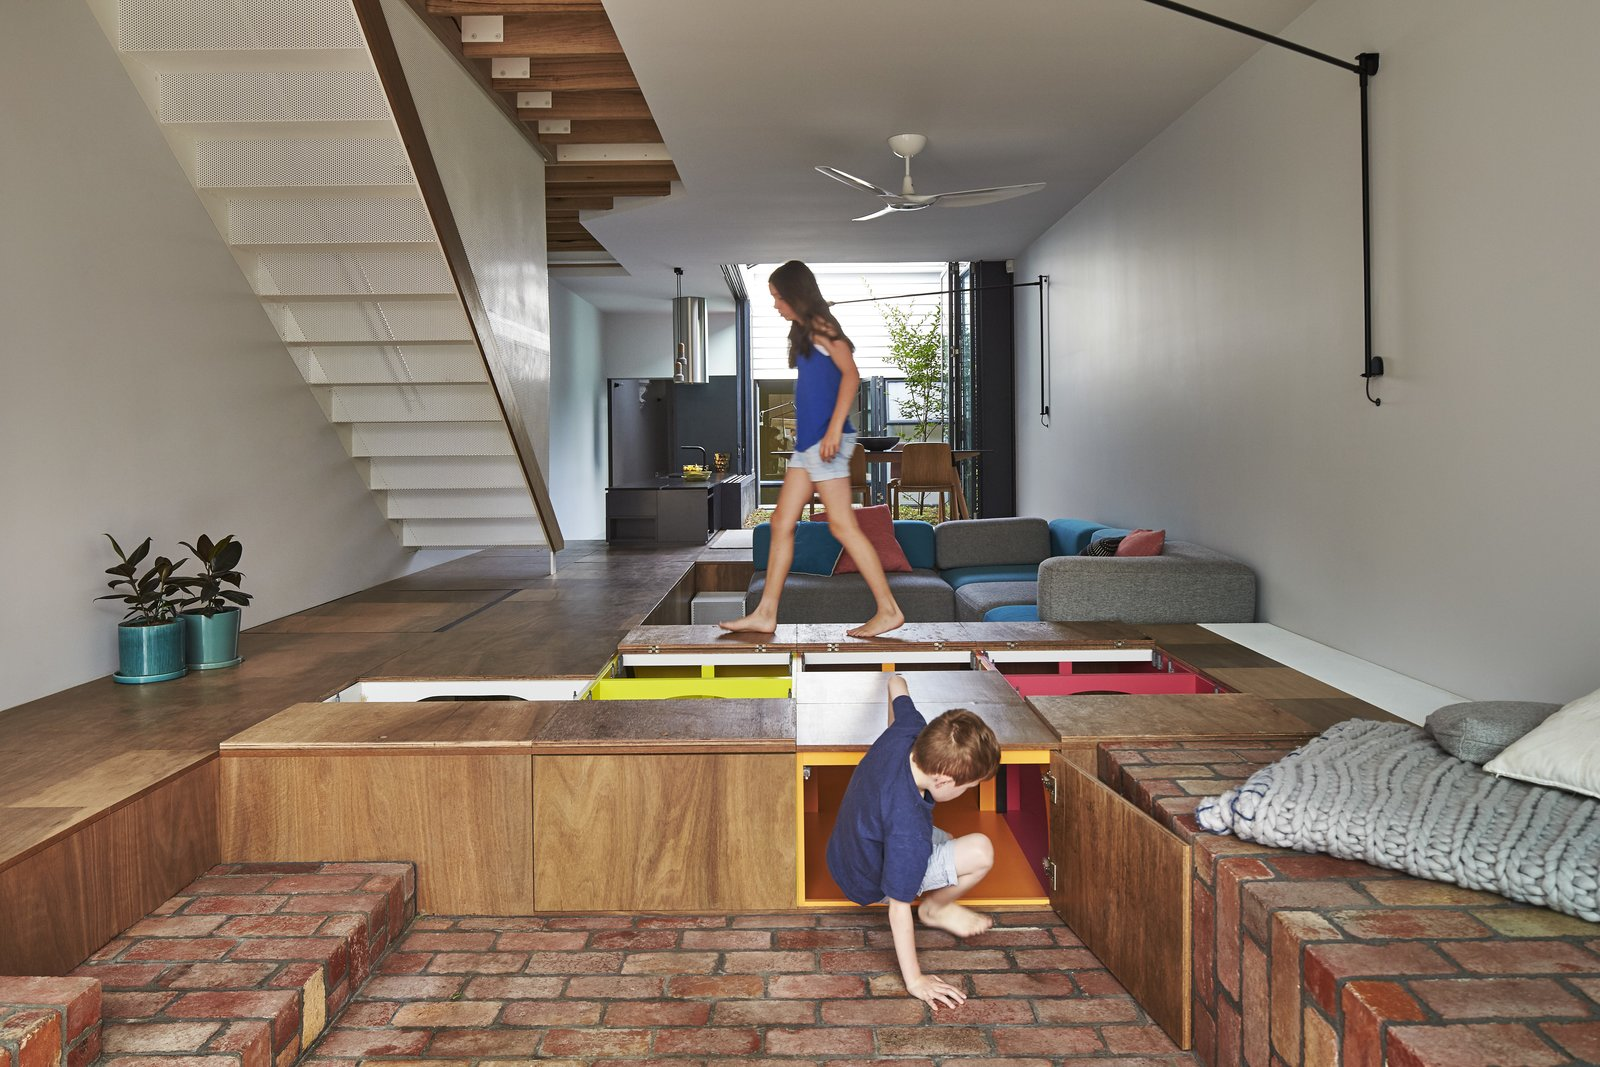 Lifestyle Koubou Stairs p 113  Photo 12 of 15 in Gestalten's New Book Shows How to Transform Small Spaces Into Design Marvels